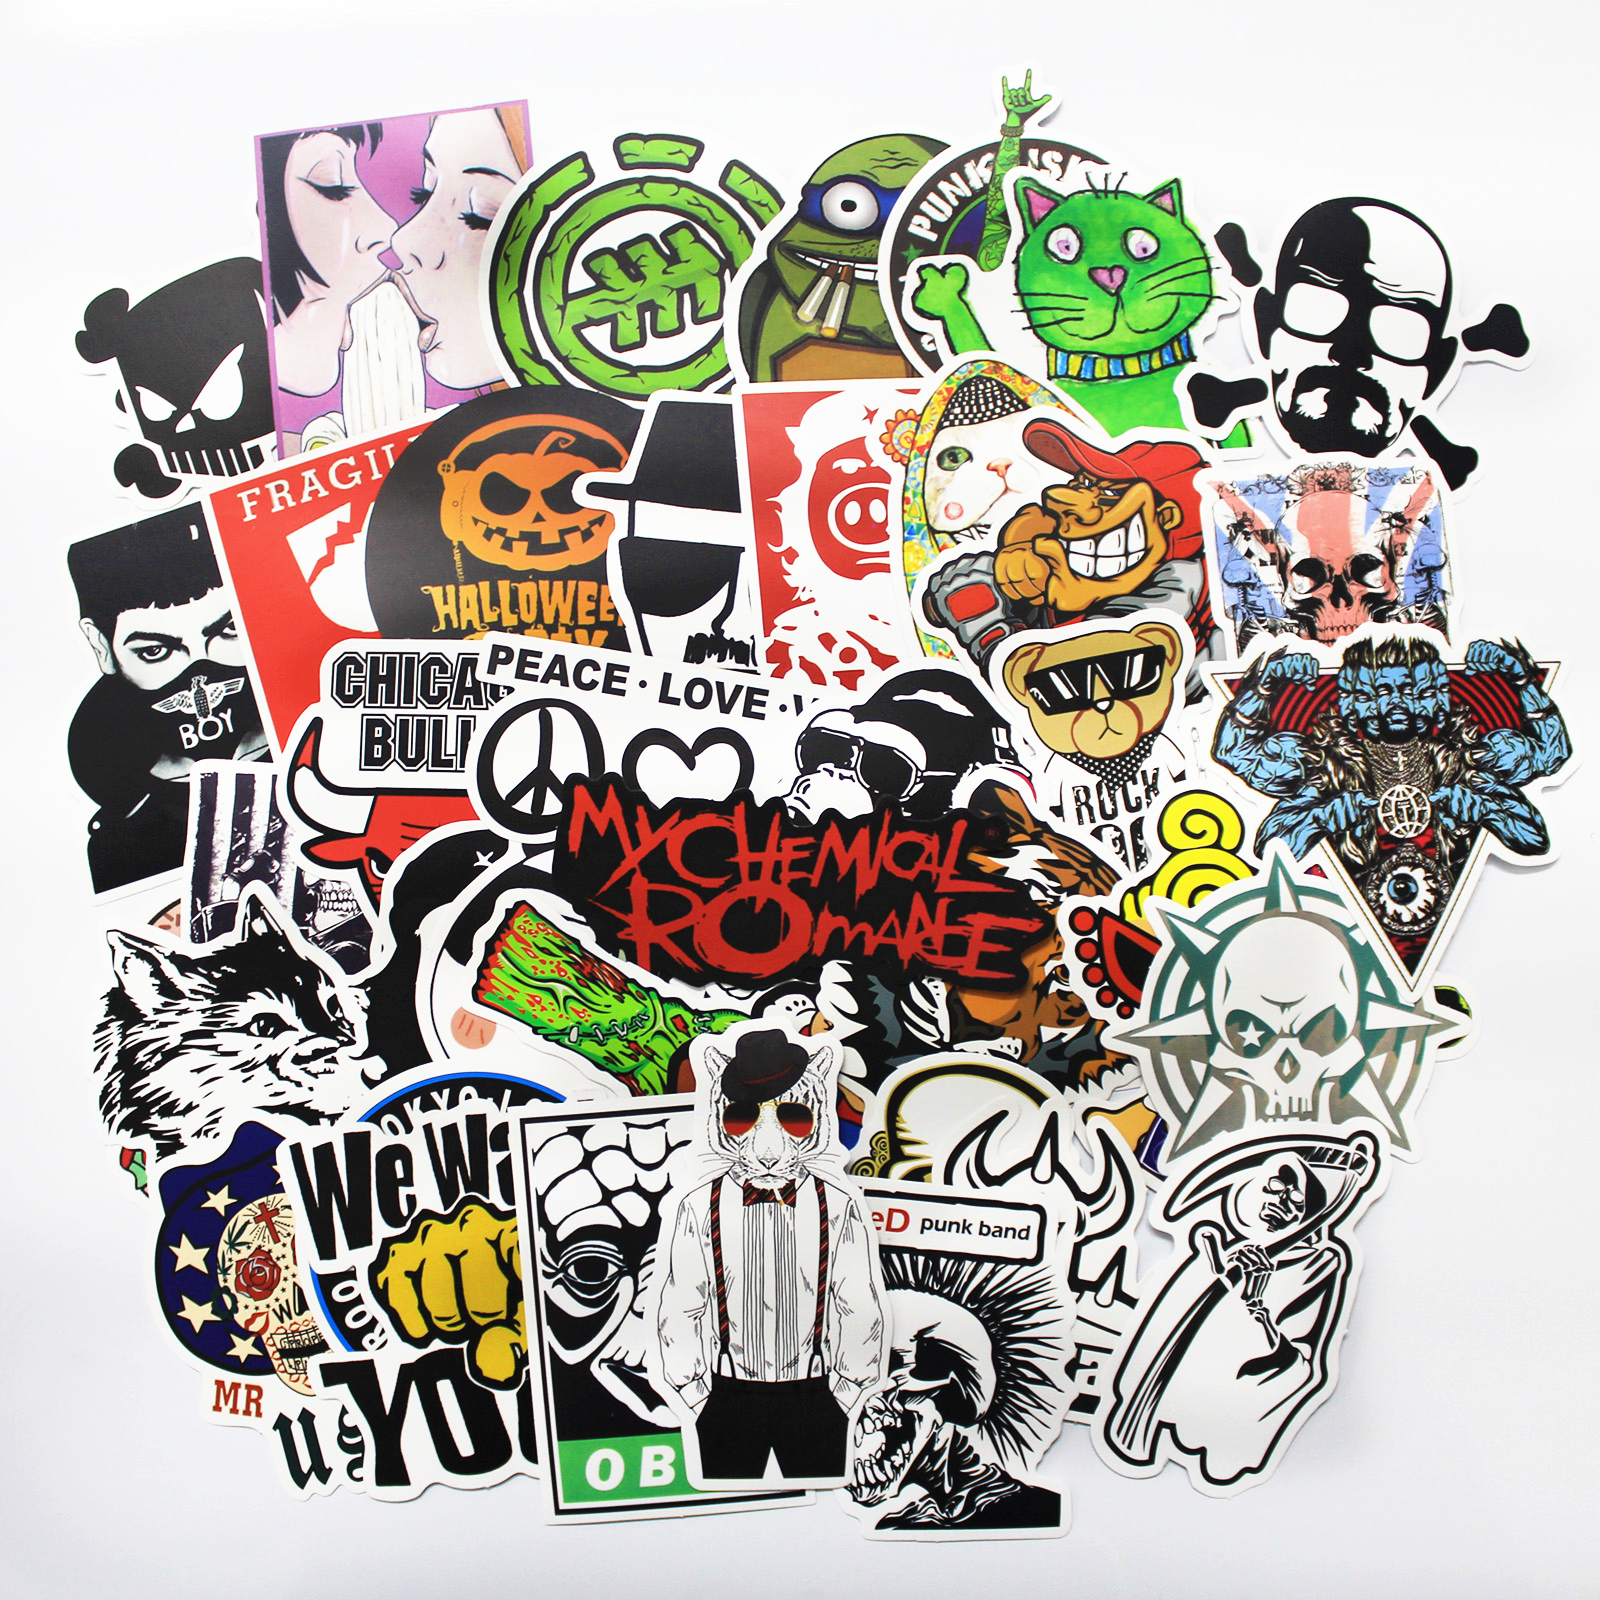 100 pcs Fashion cool DIY Stickers for Skateboard Laptop Luggage Snowboard Fridge Phone toy Styling home